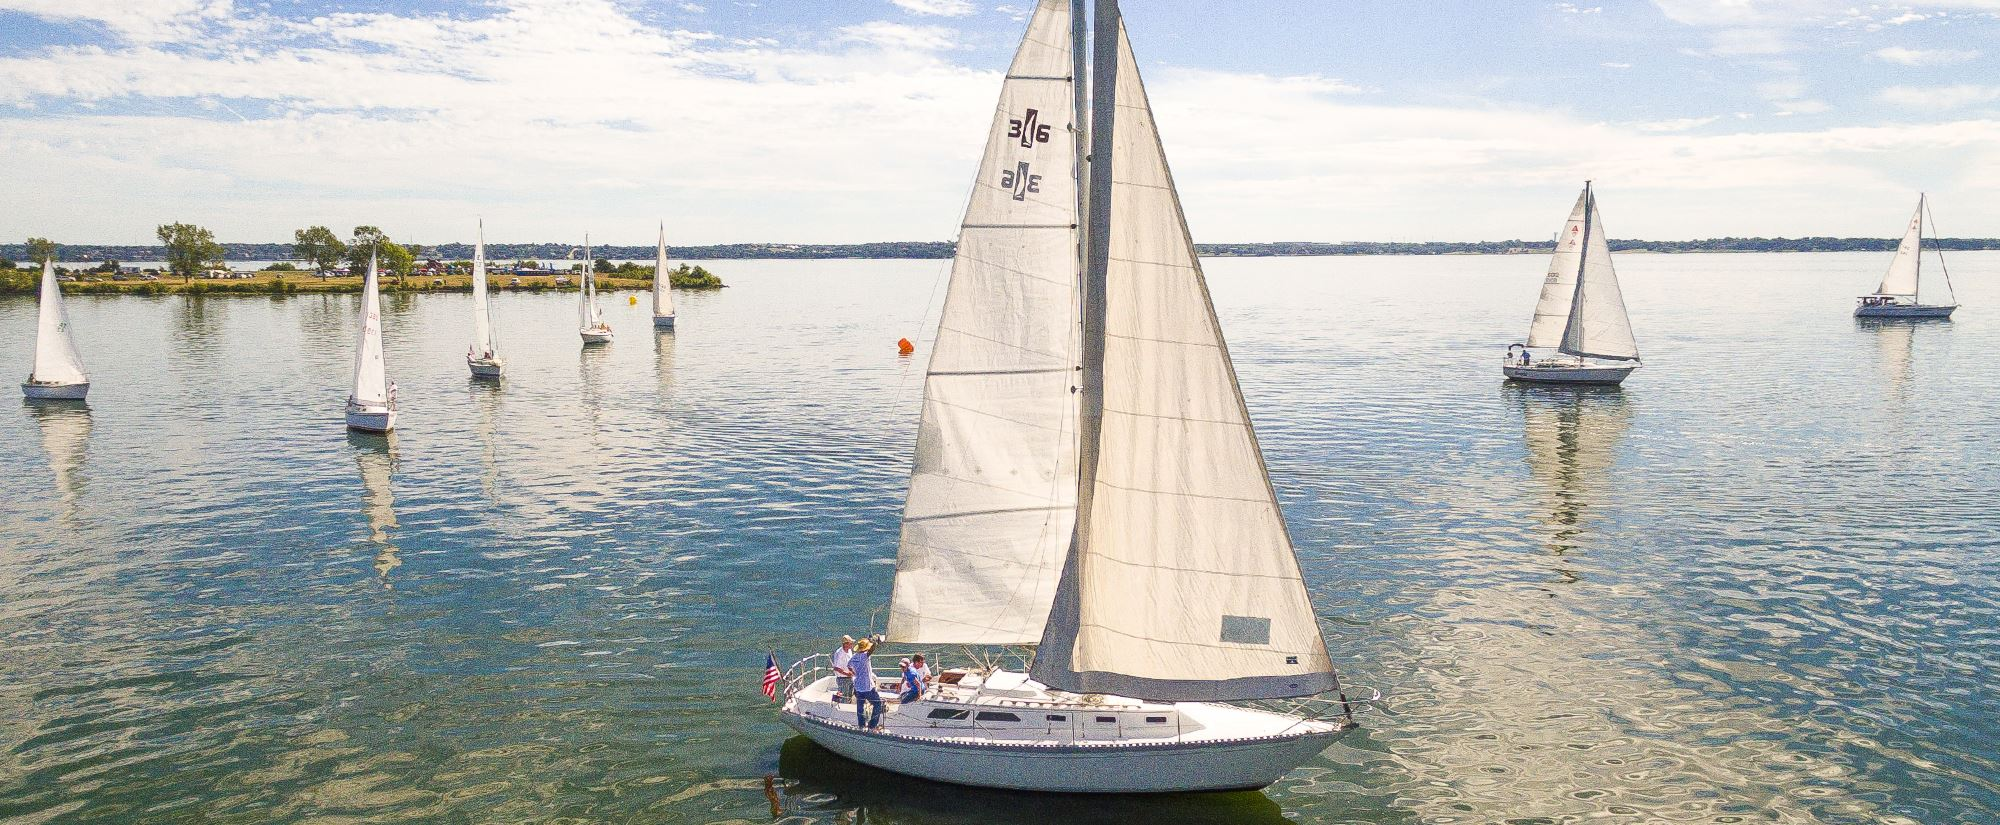 Sailboats on Lake Ray Hubbard for the Bayside Regatta